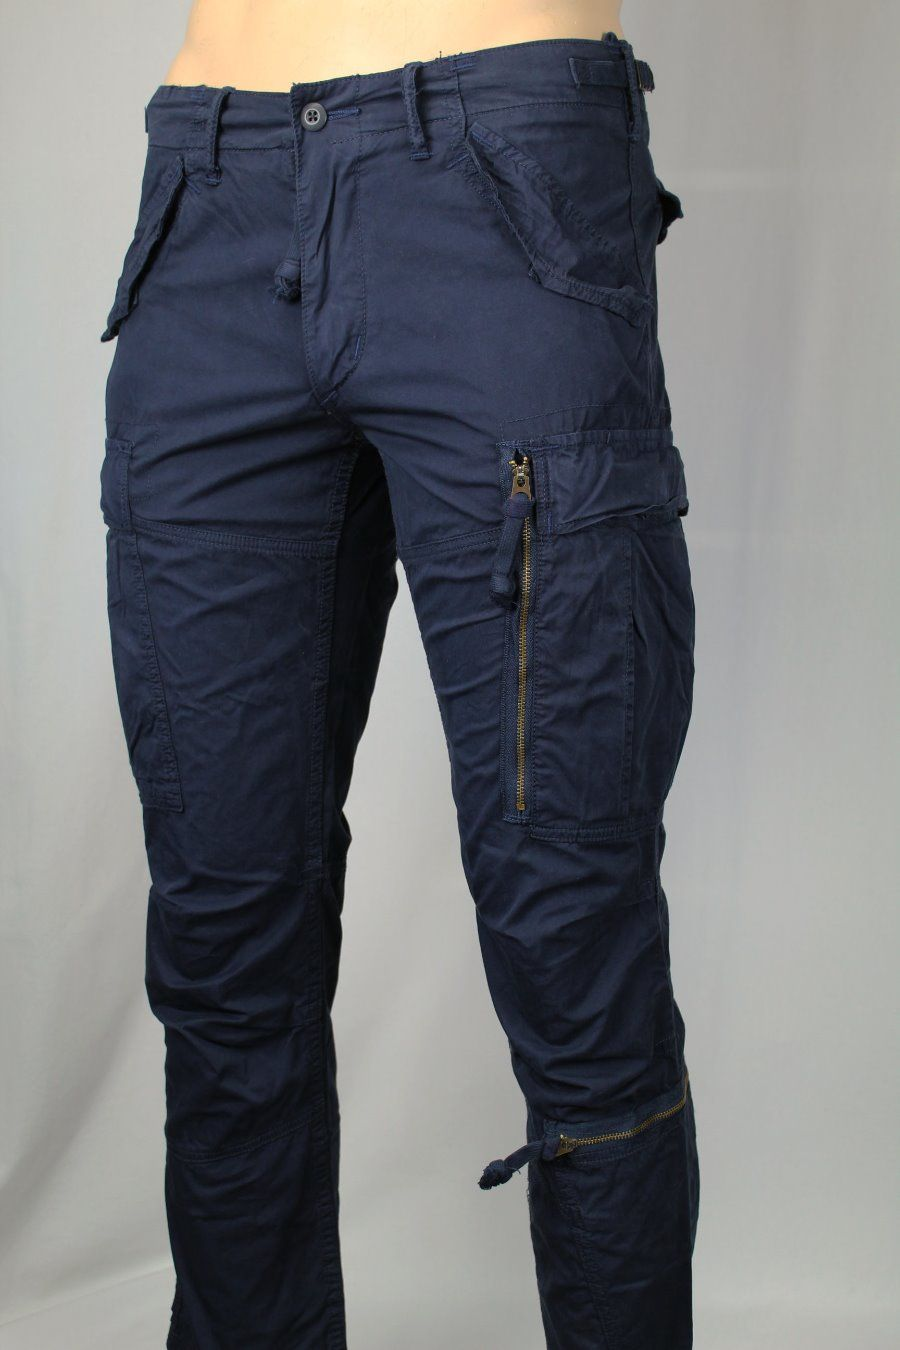 Polo Ralph Lauren Navy Blue Straight Fit Cargo Pants Snaps